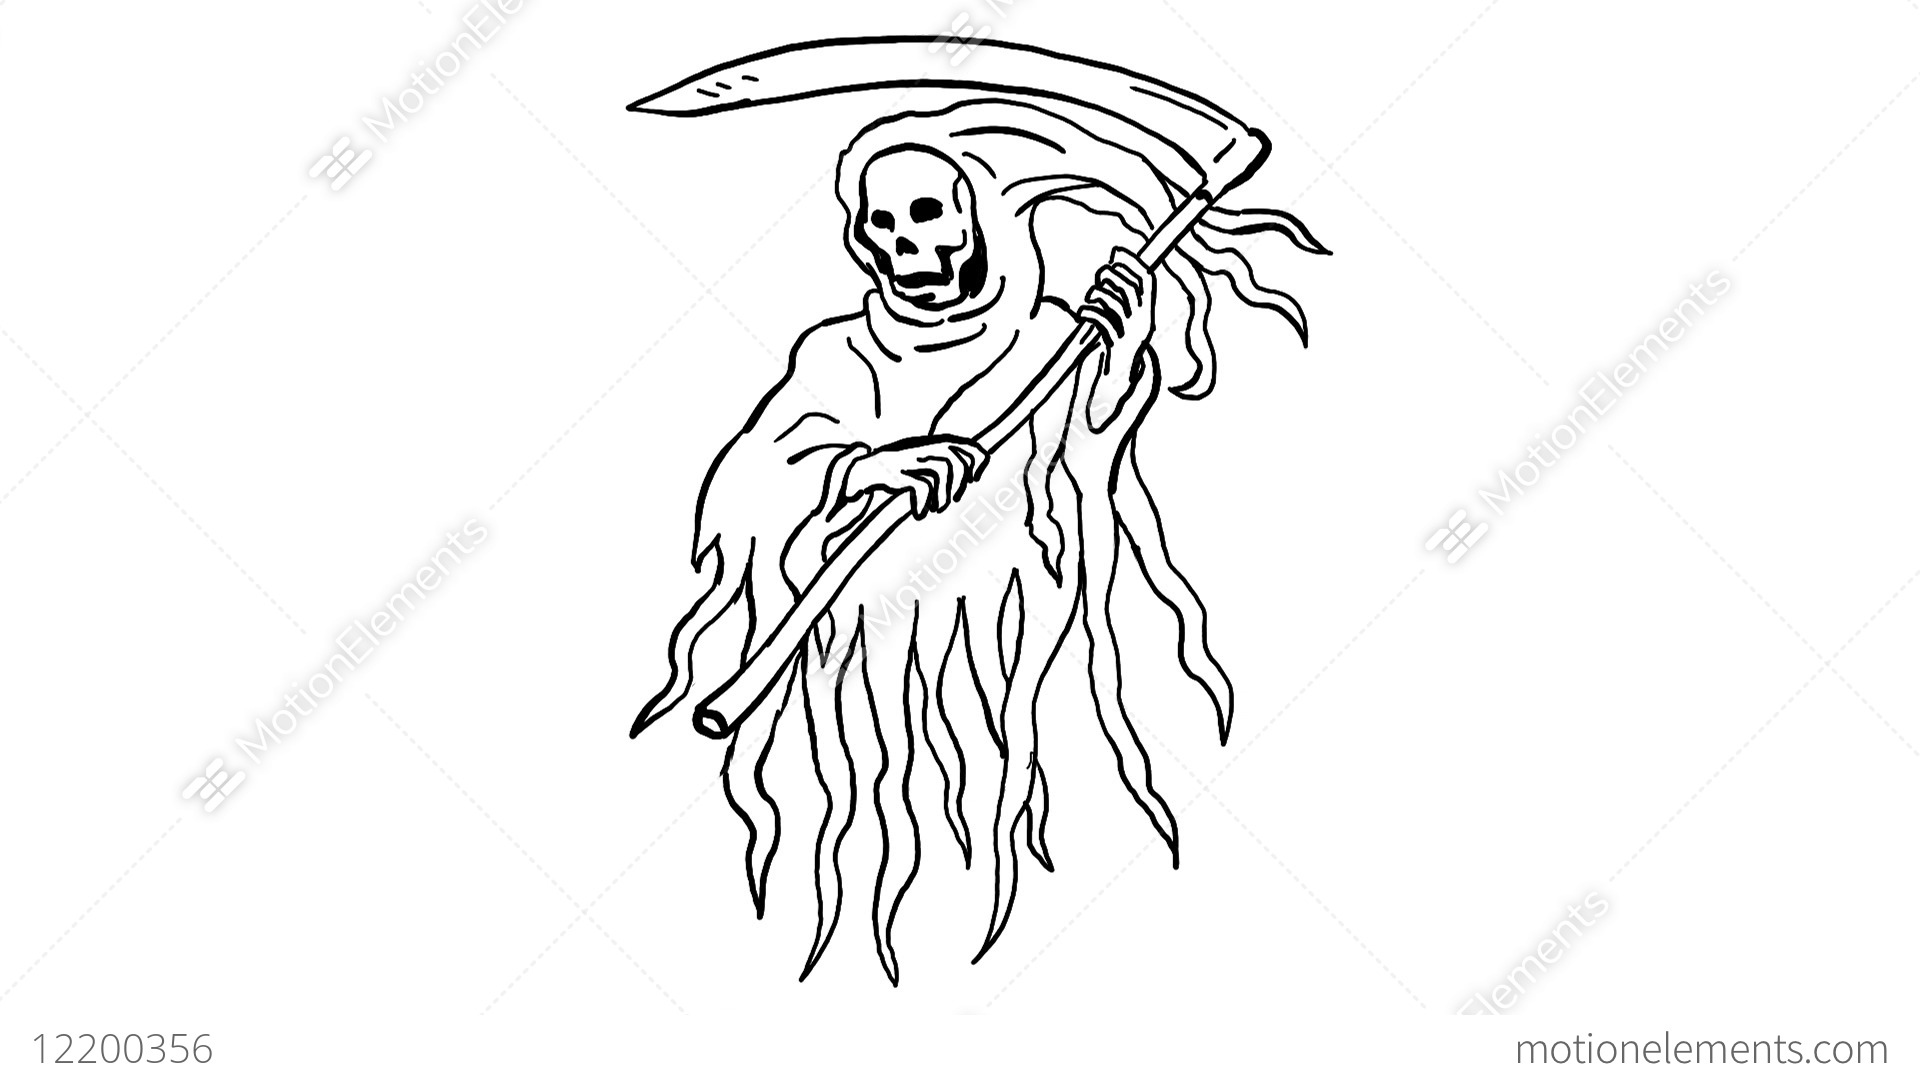 how to draw the grim reaper grim reaper line drawing at getdrawings free download draw how the grim to reaper